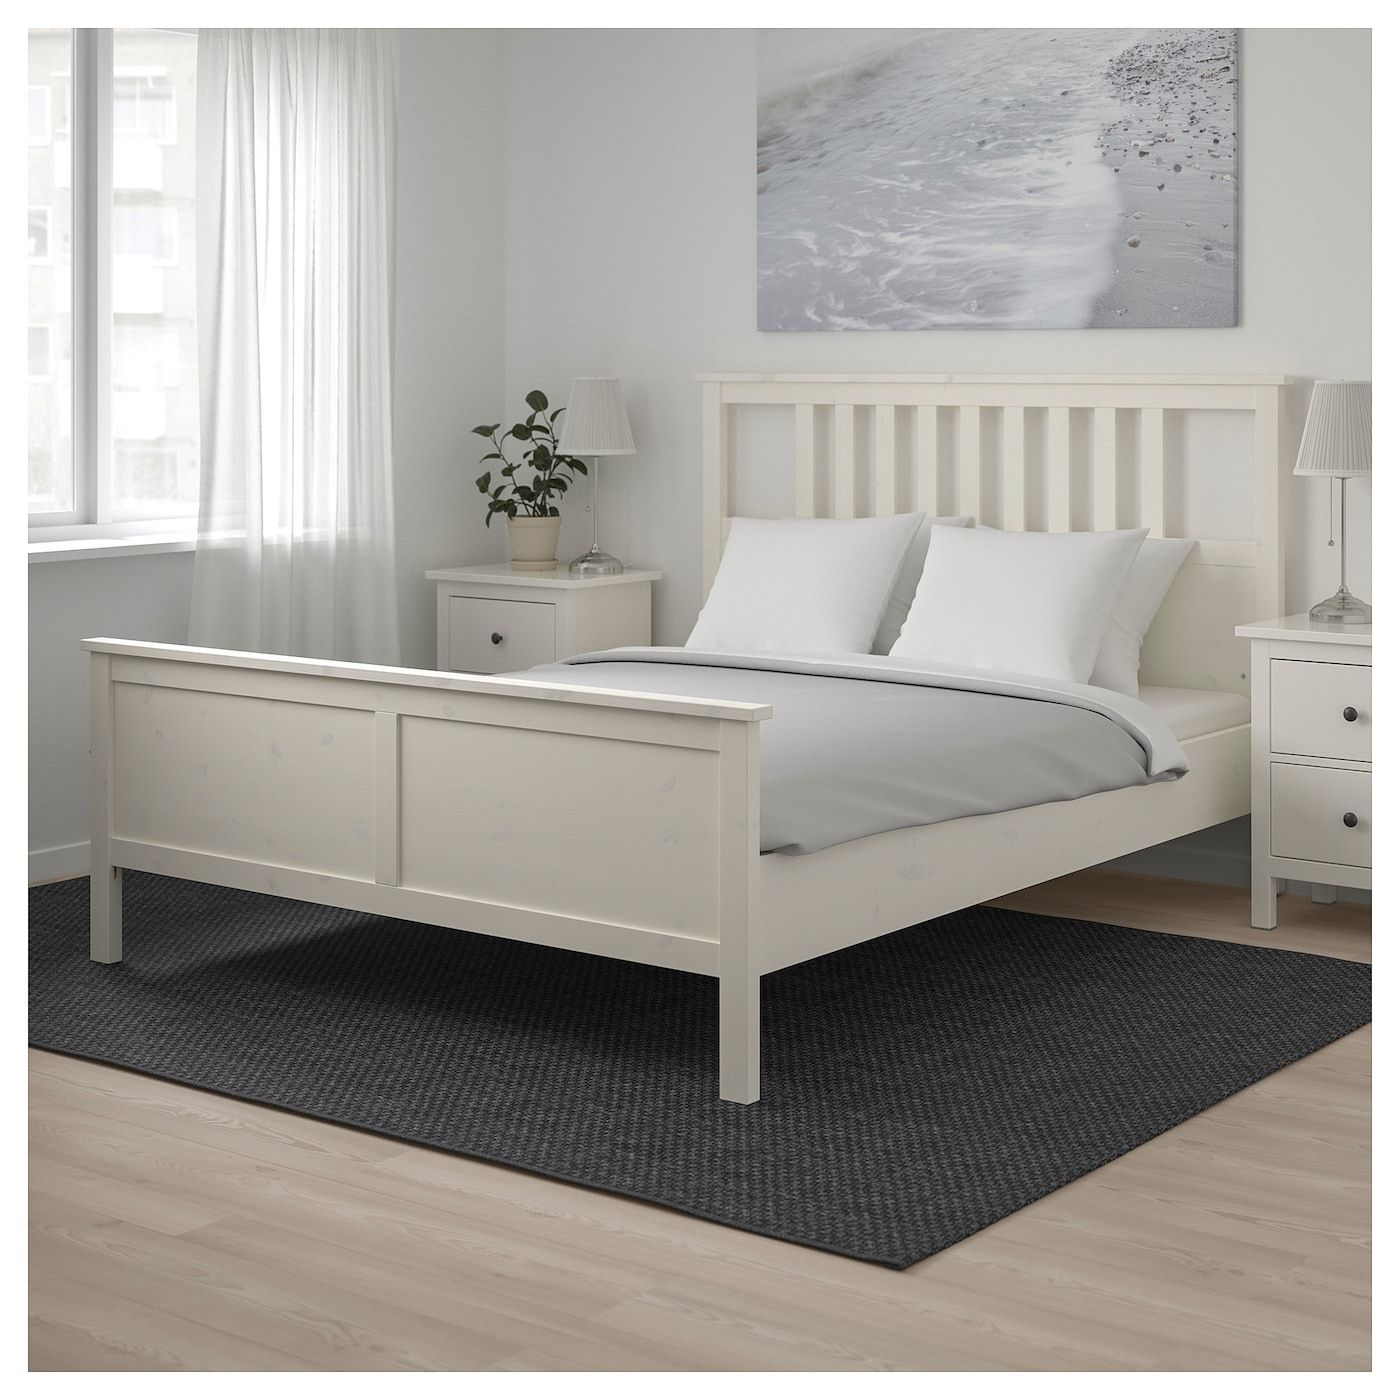 Hemnes Bettgestell Weiss Gebeizt Leirsund Ikea Osterreich Ikea Hemnes Bed Hemnes Bed Adjustable Beds